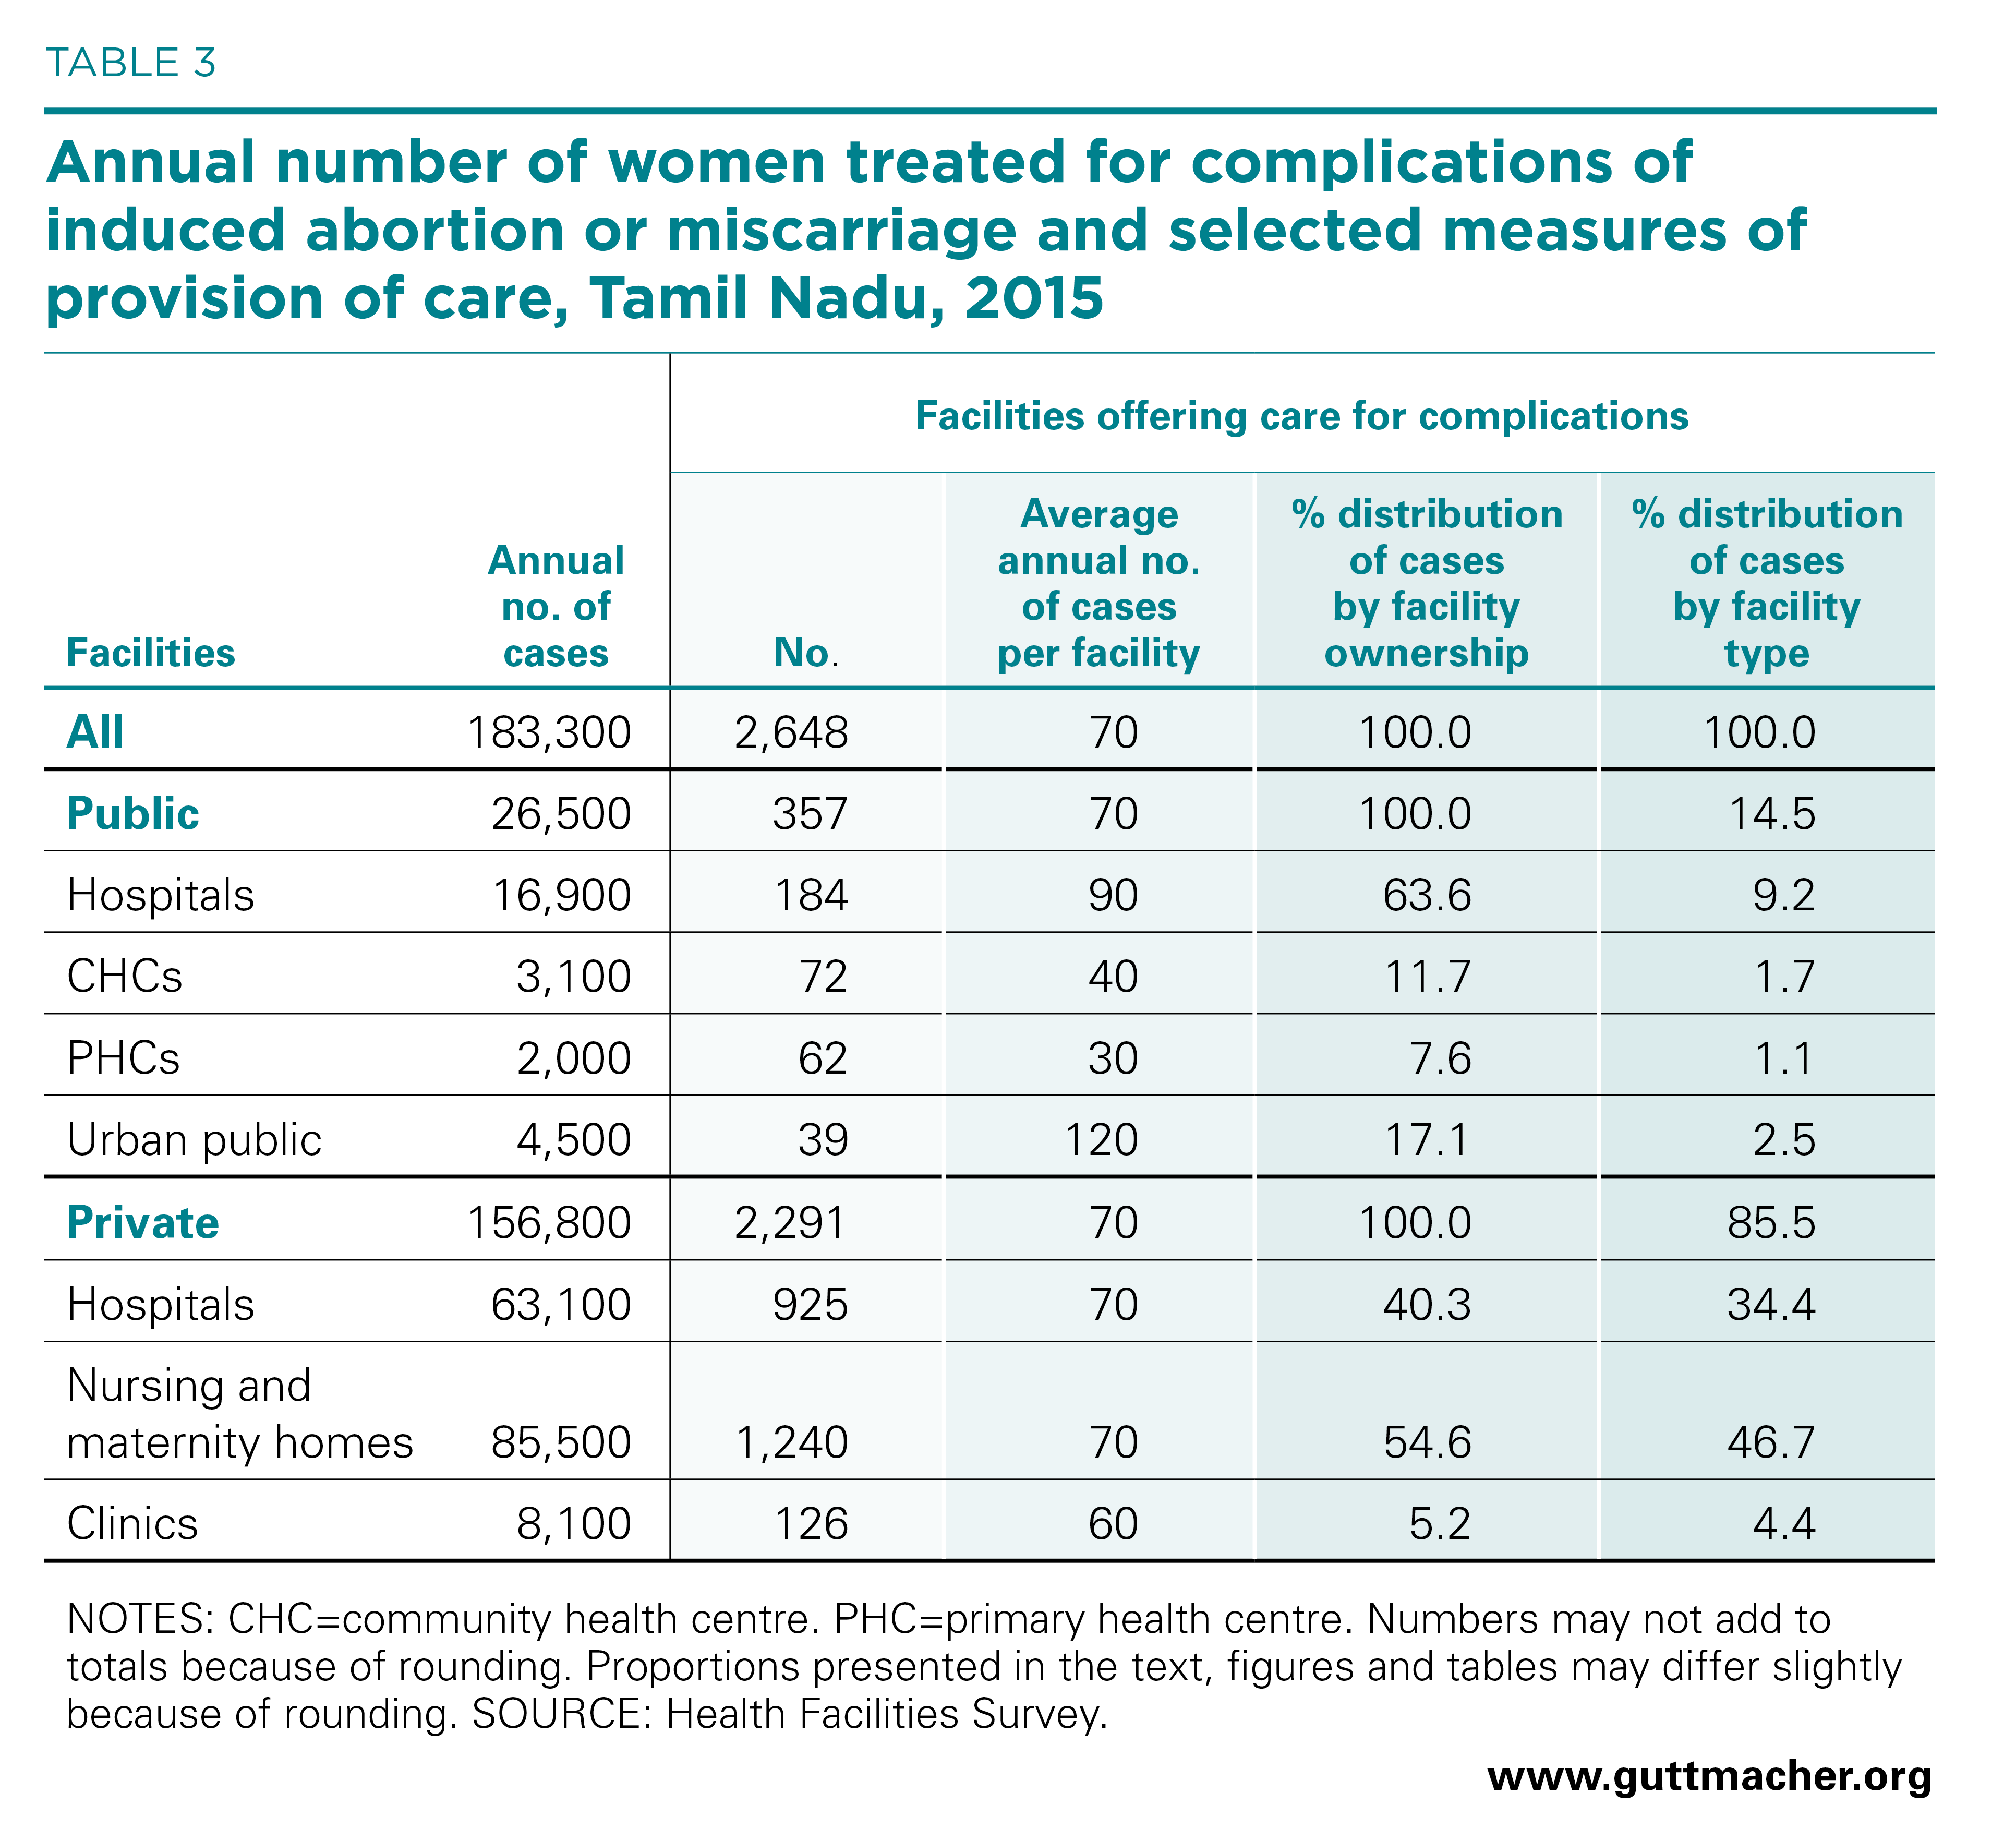 Unintended Pregnancy, Abortion and Postabortion Care in Tamil Nadu